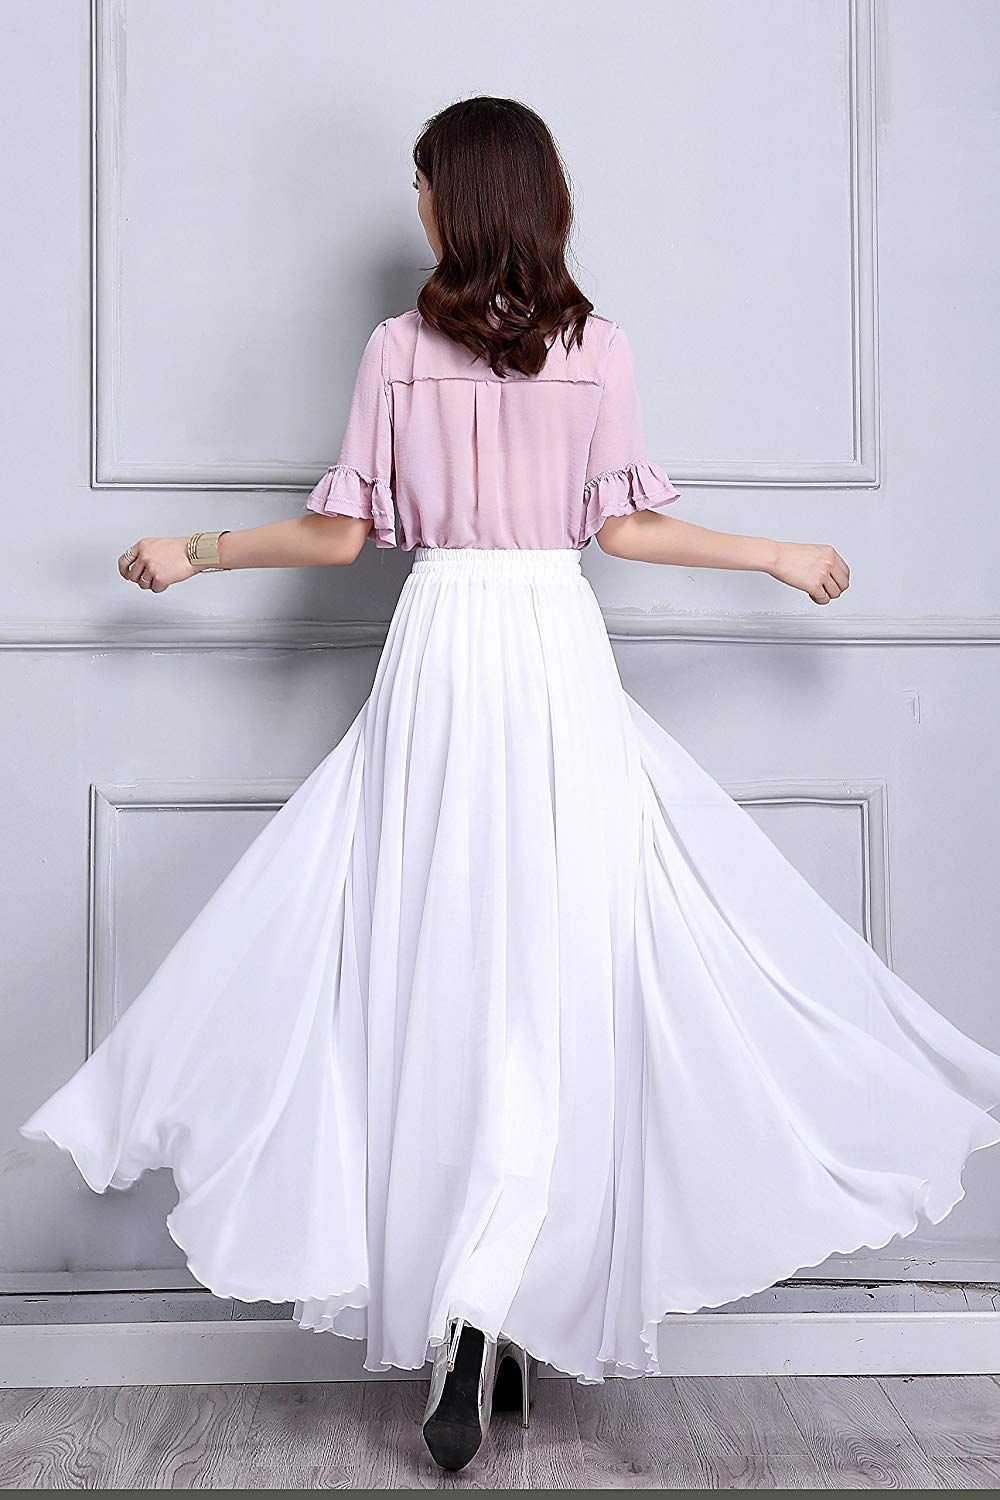 Sissily women summer chiffon high waist pleated big hem fullankle